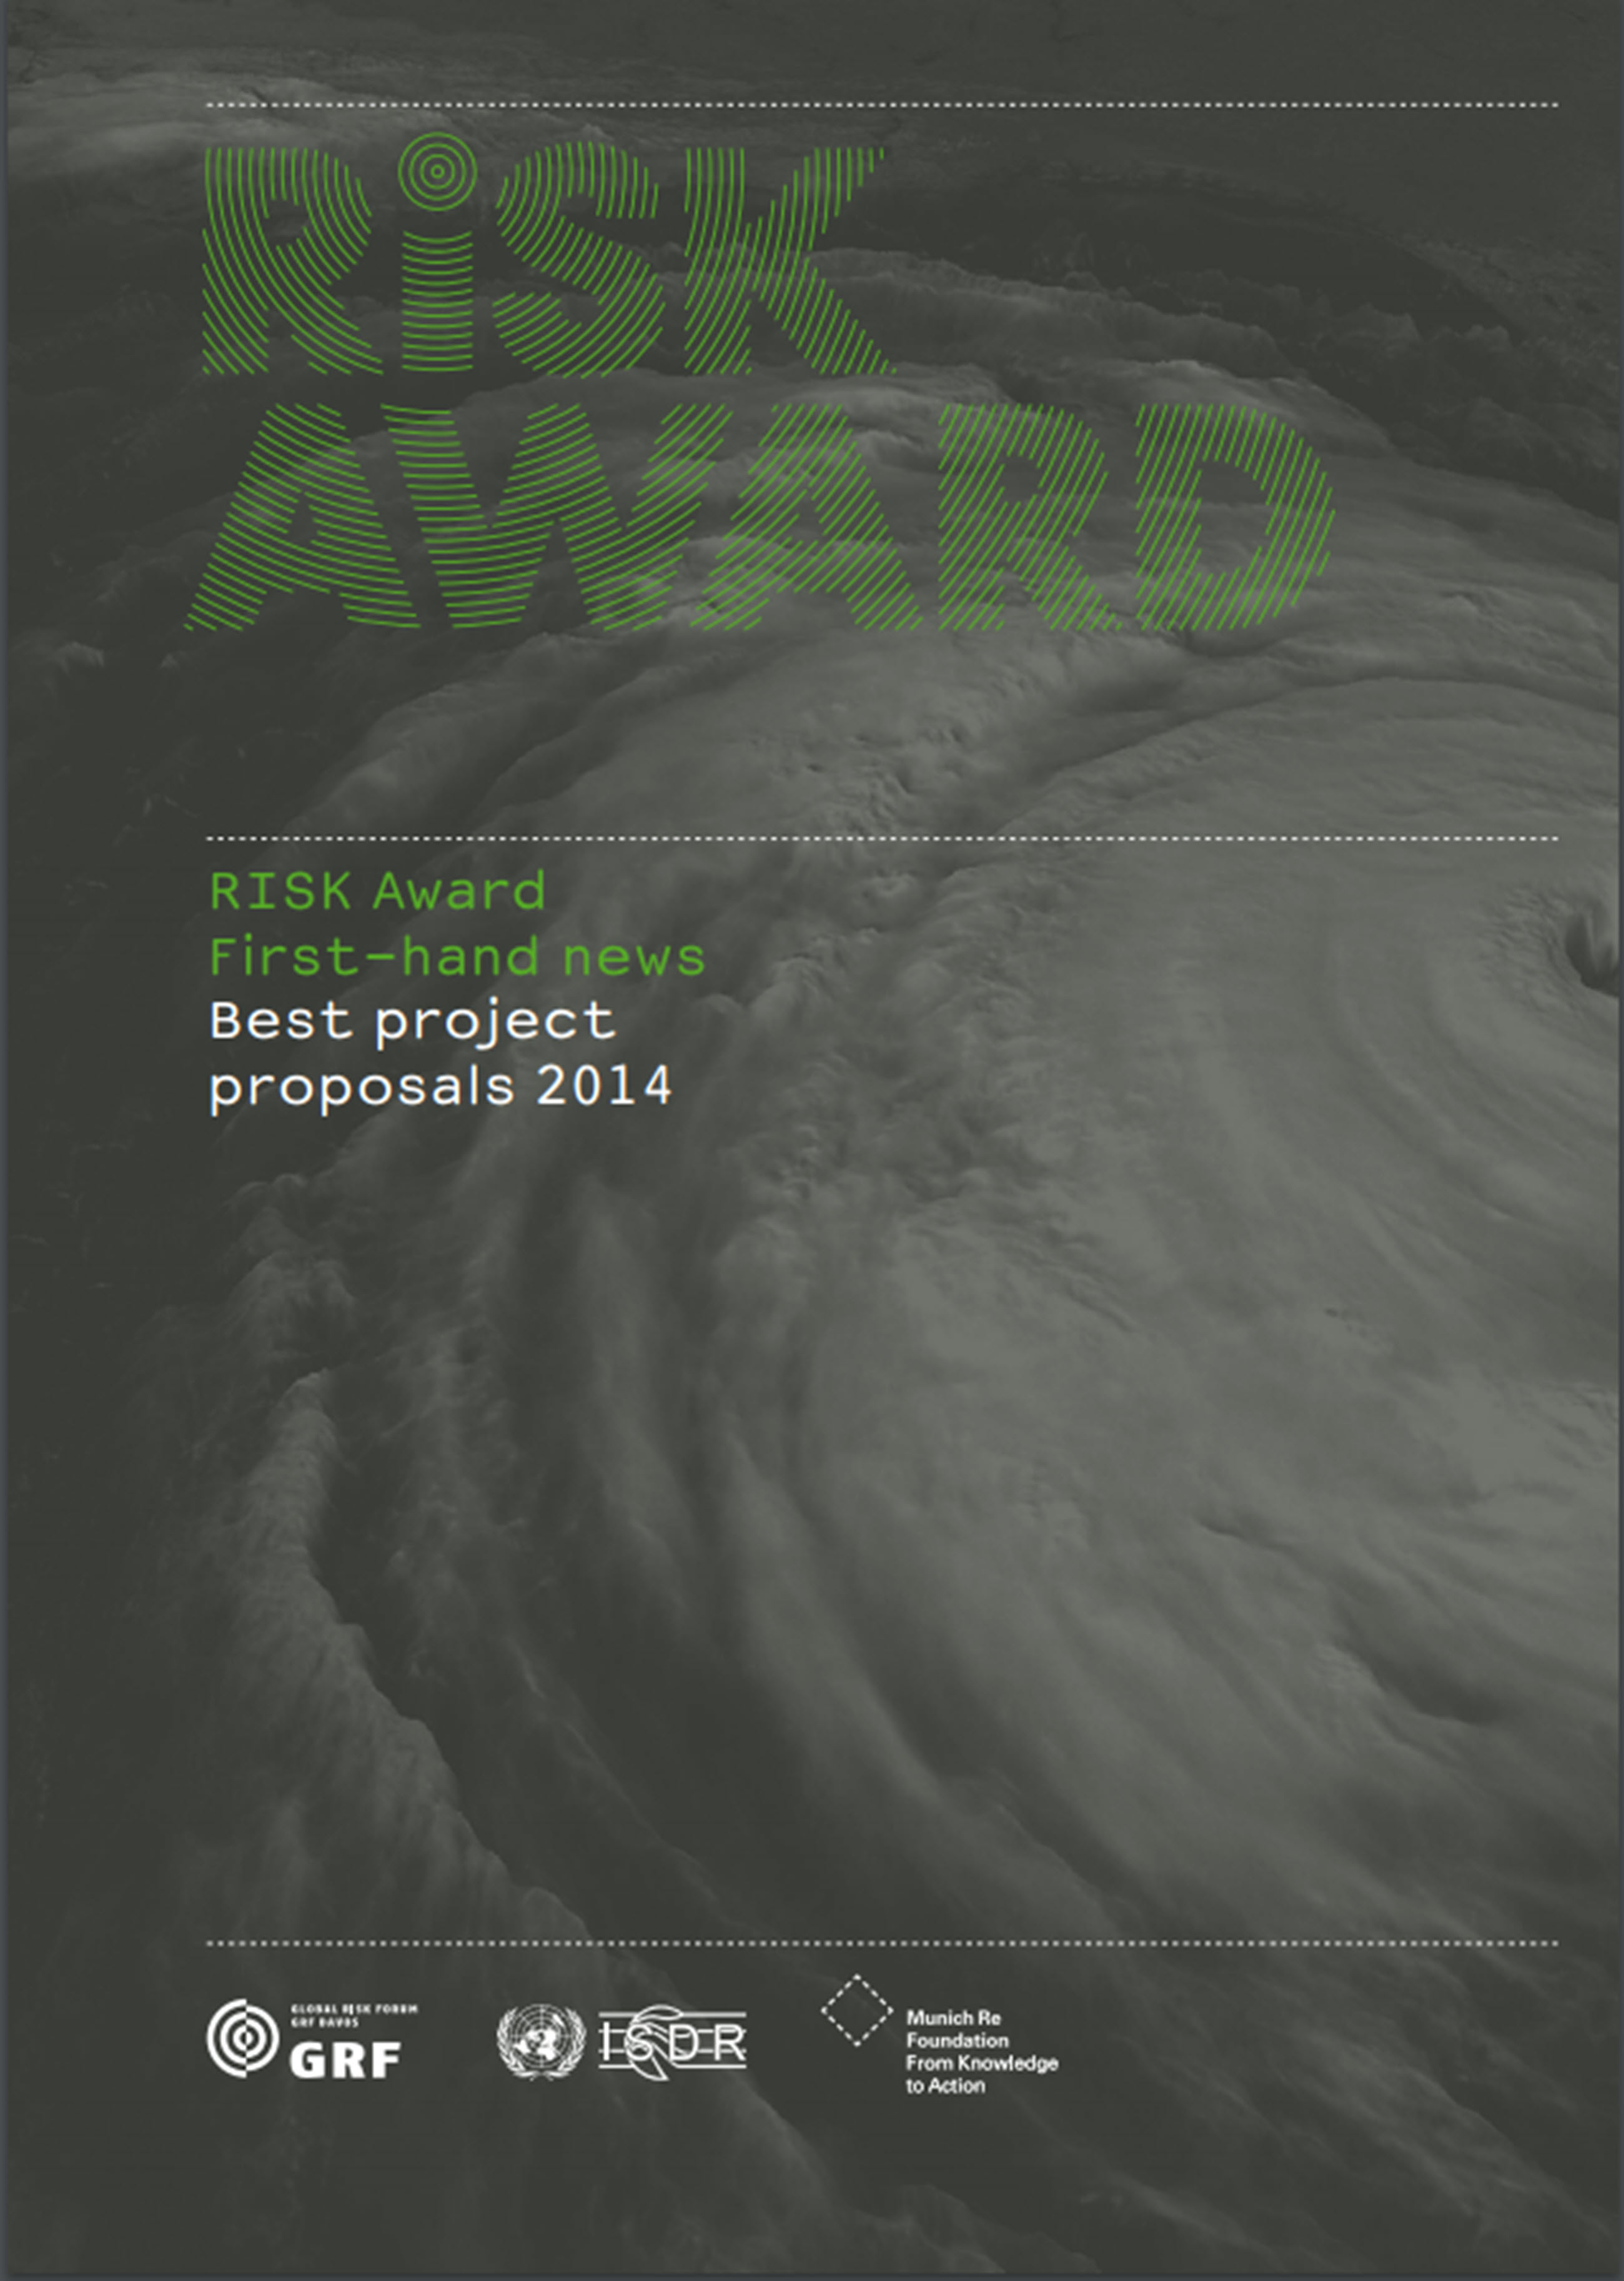 RISK Award: First-hand news - Best project proposals 2014RISK Award: First-hand news - Best project proposals 2014